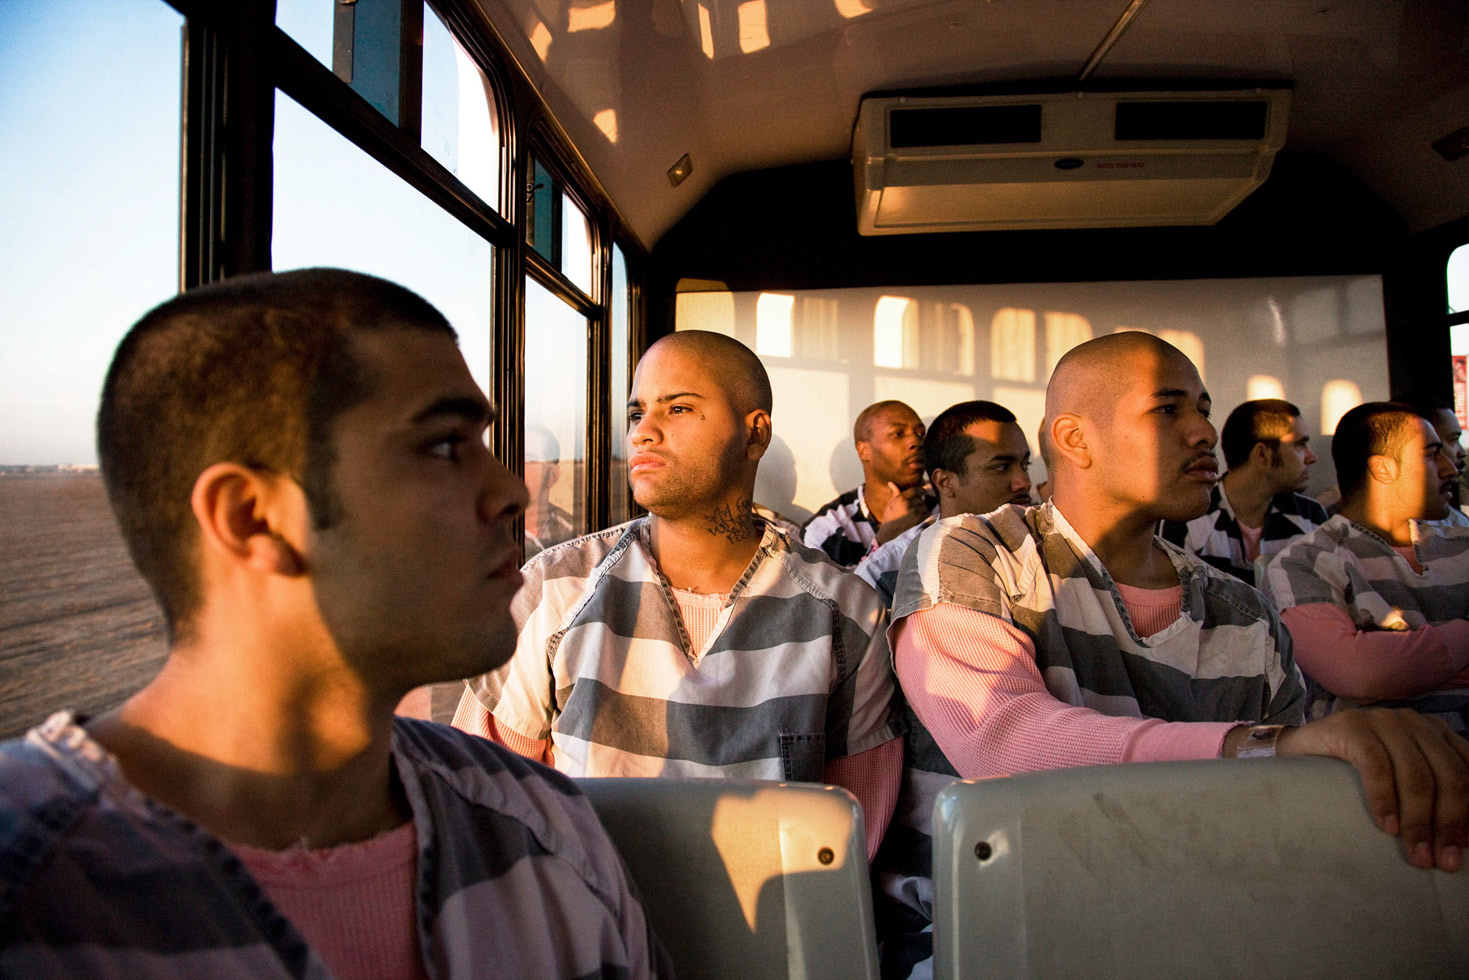 Inmates on the bus at dawn, going to work as a chain gang.